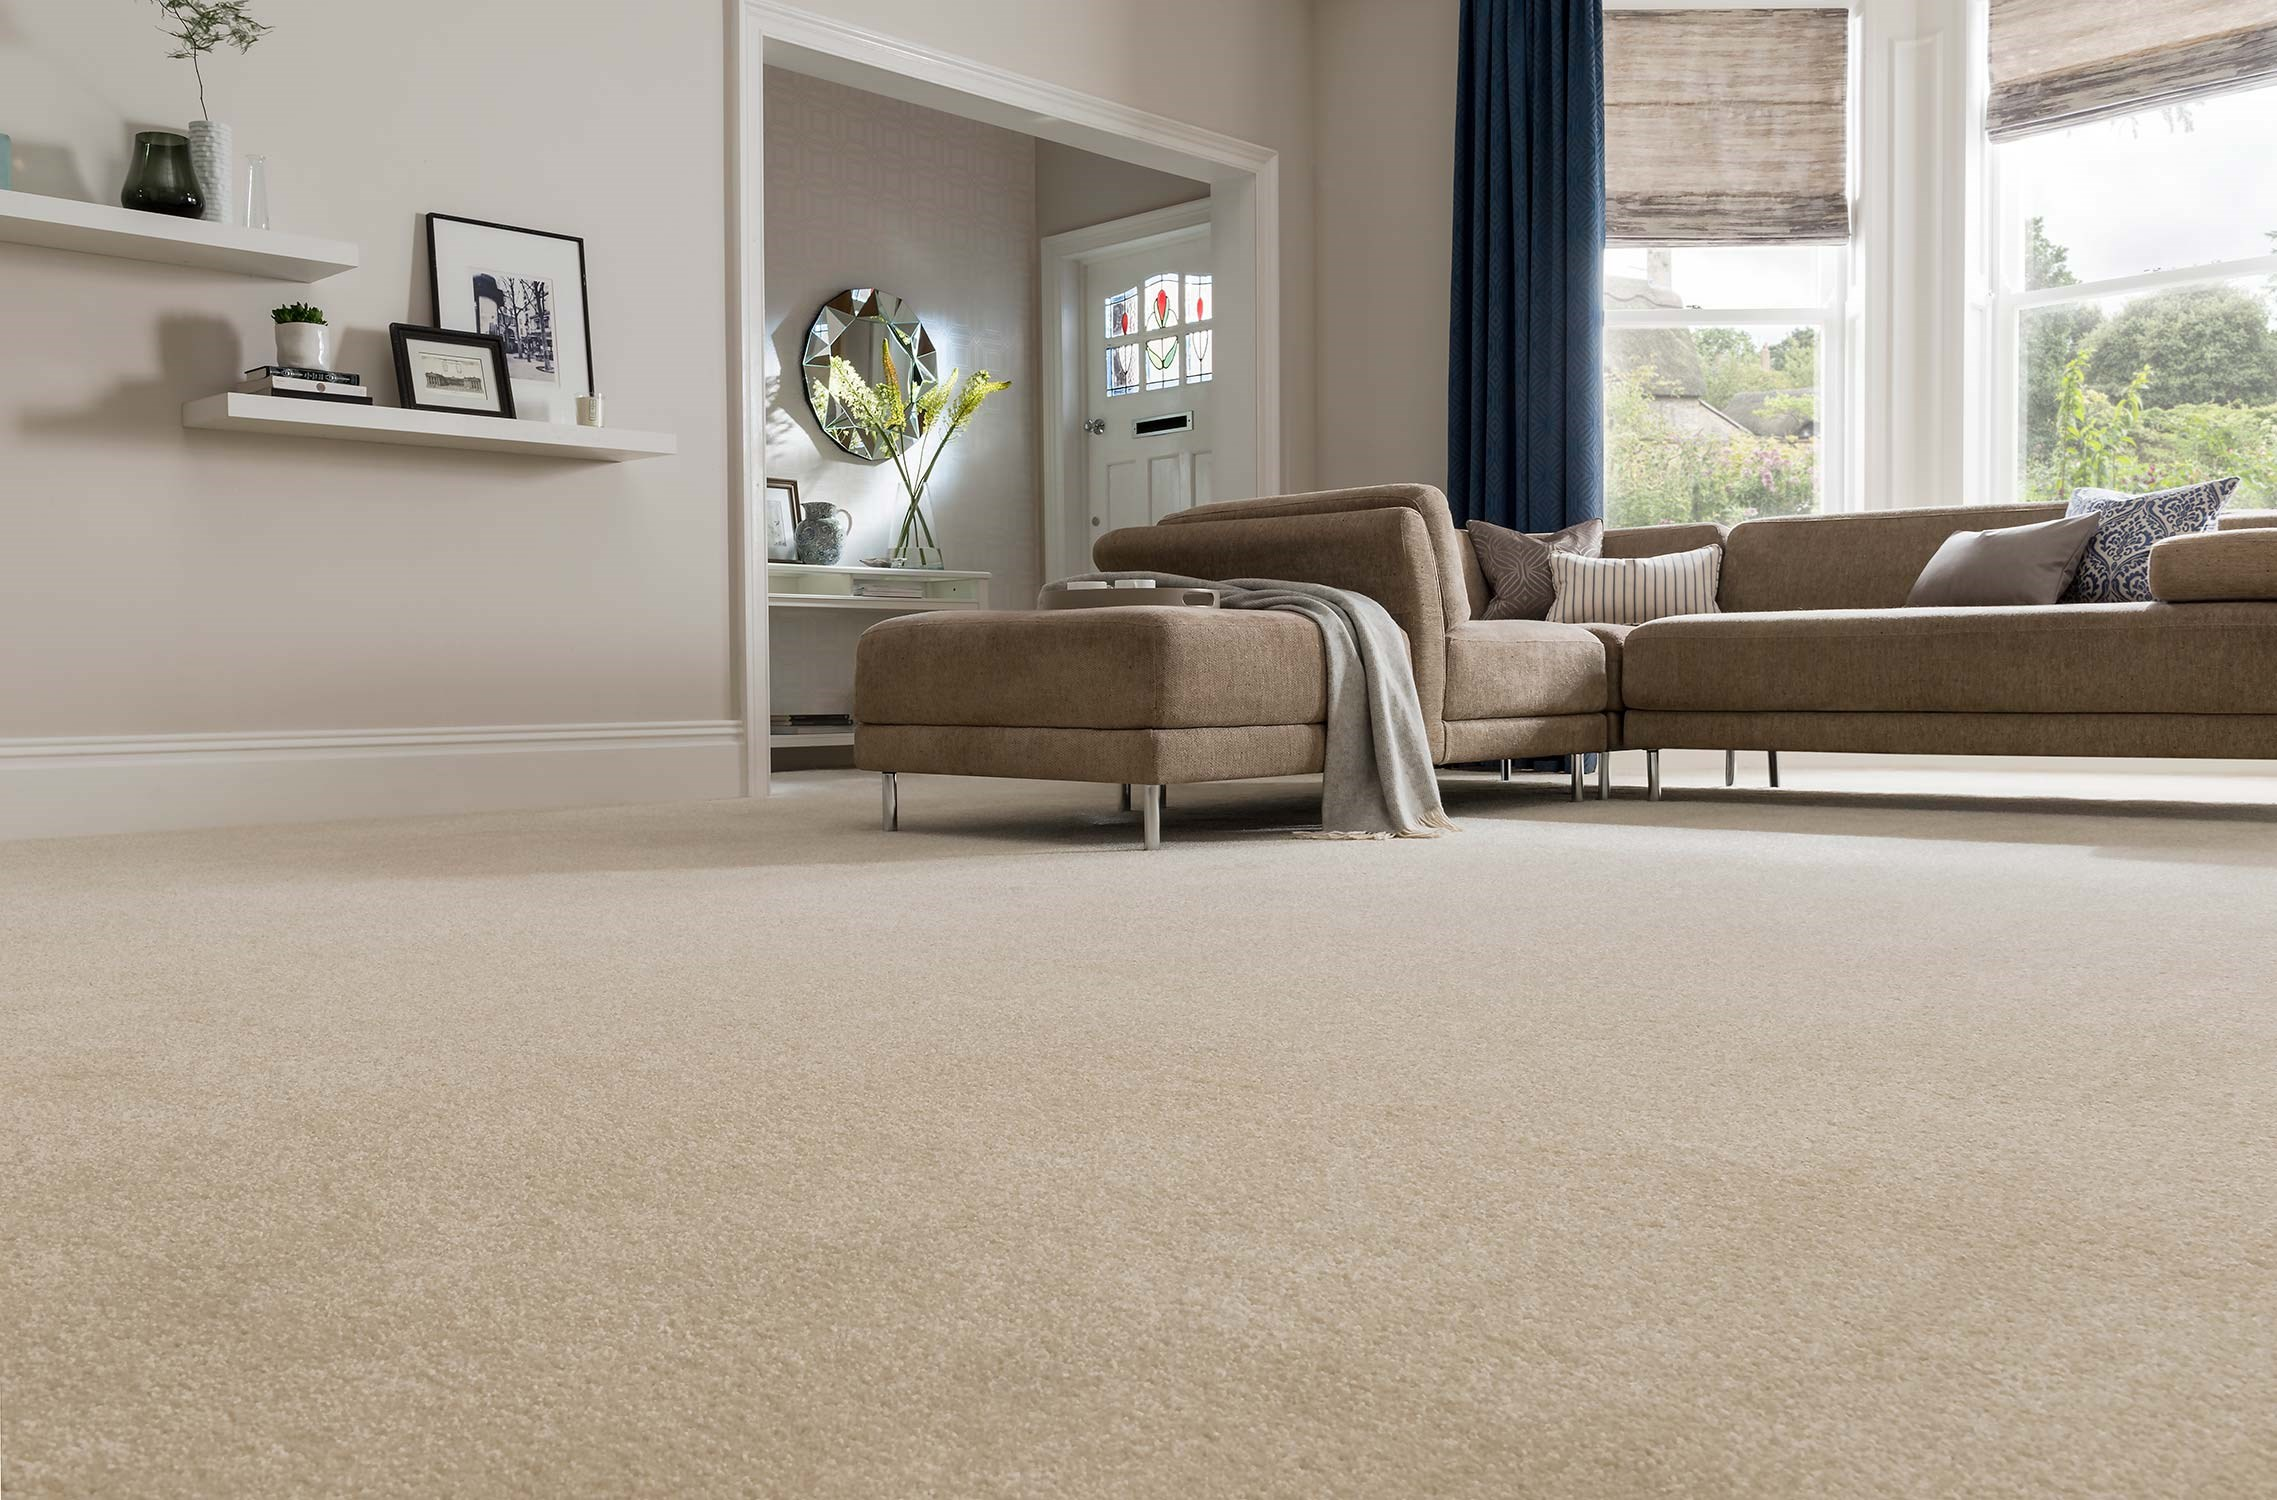 Carpet utah great price quality great carpet starts for Living room carpet